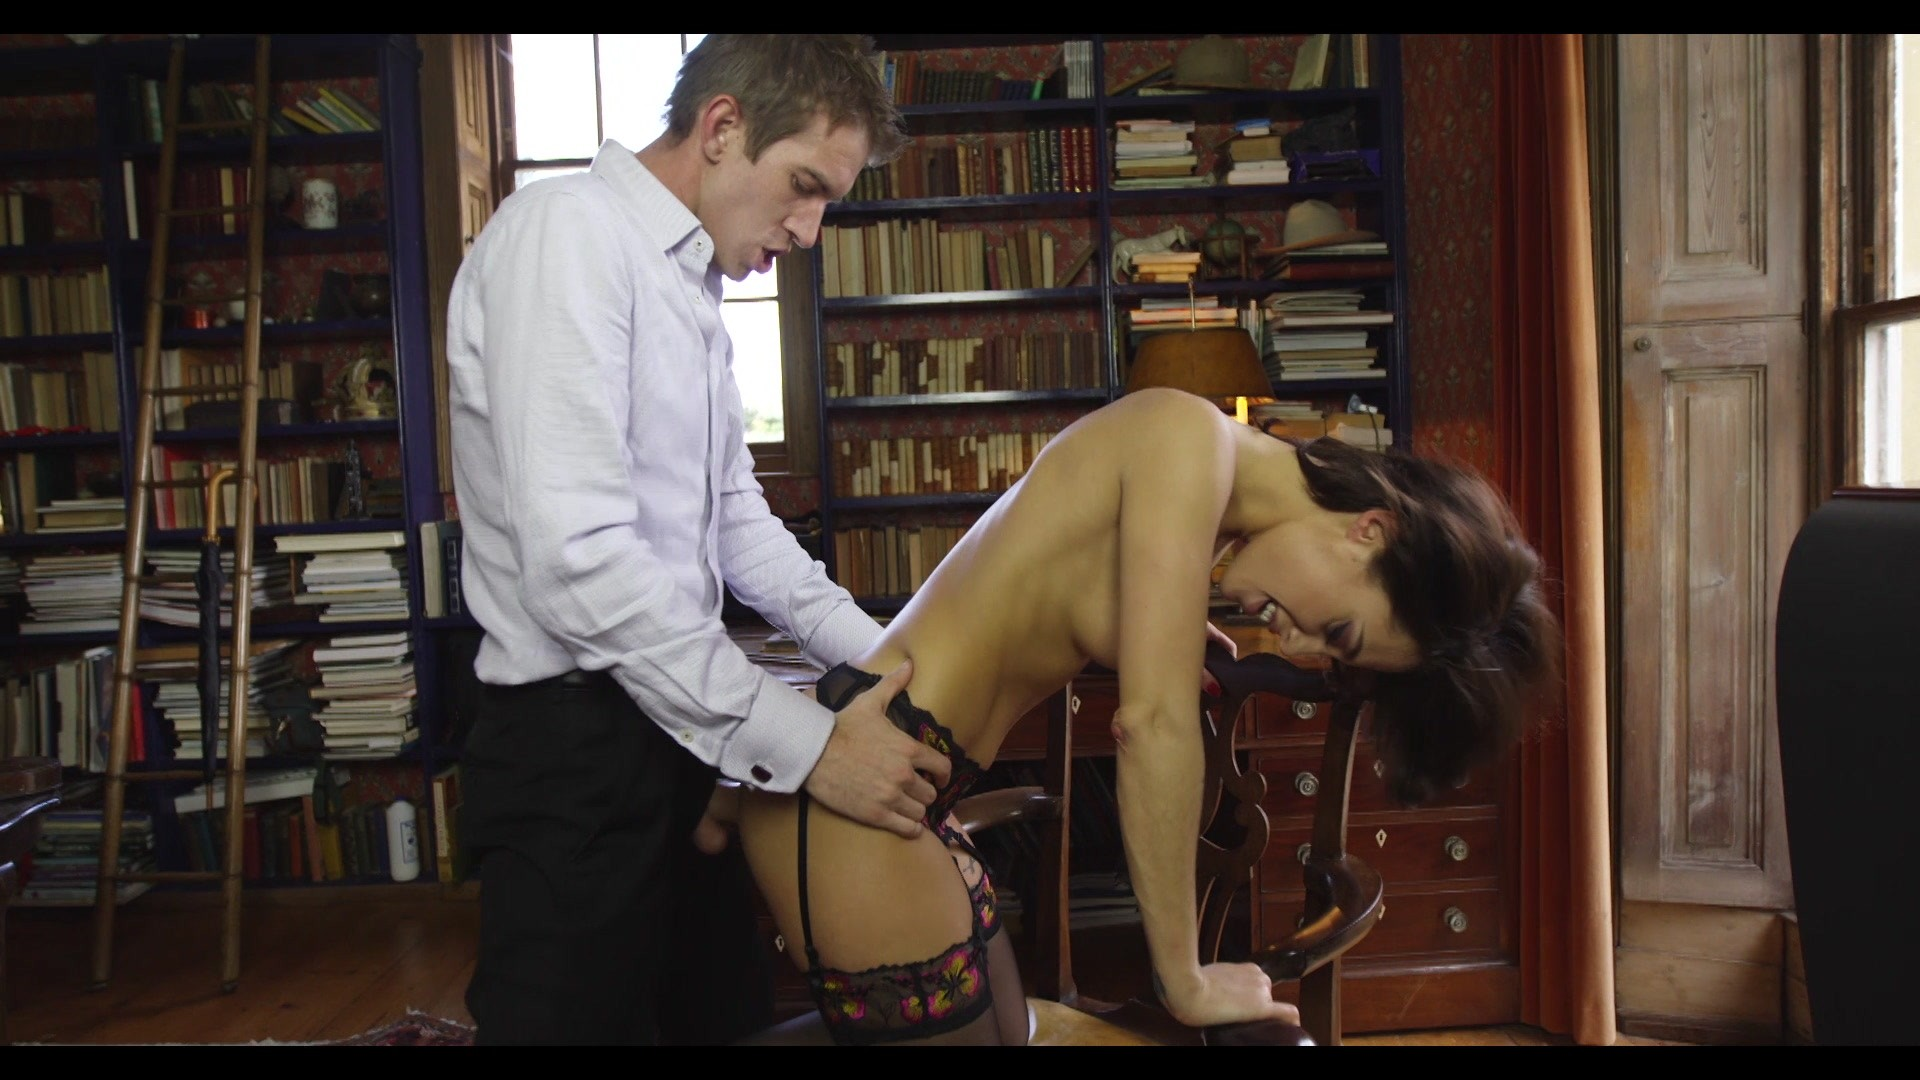 Scene with Nikita Belluci - image 15 out of 20